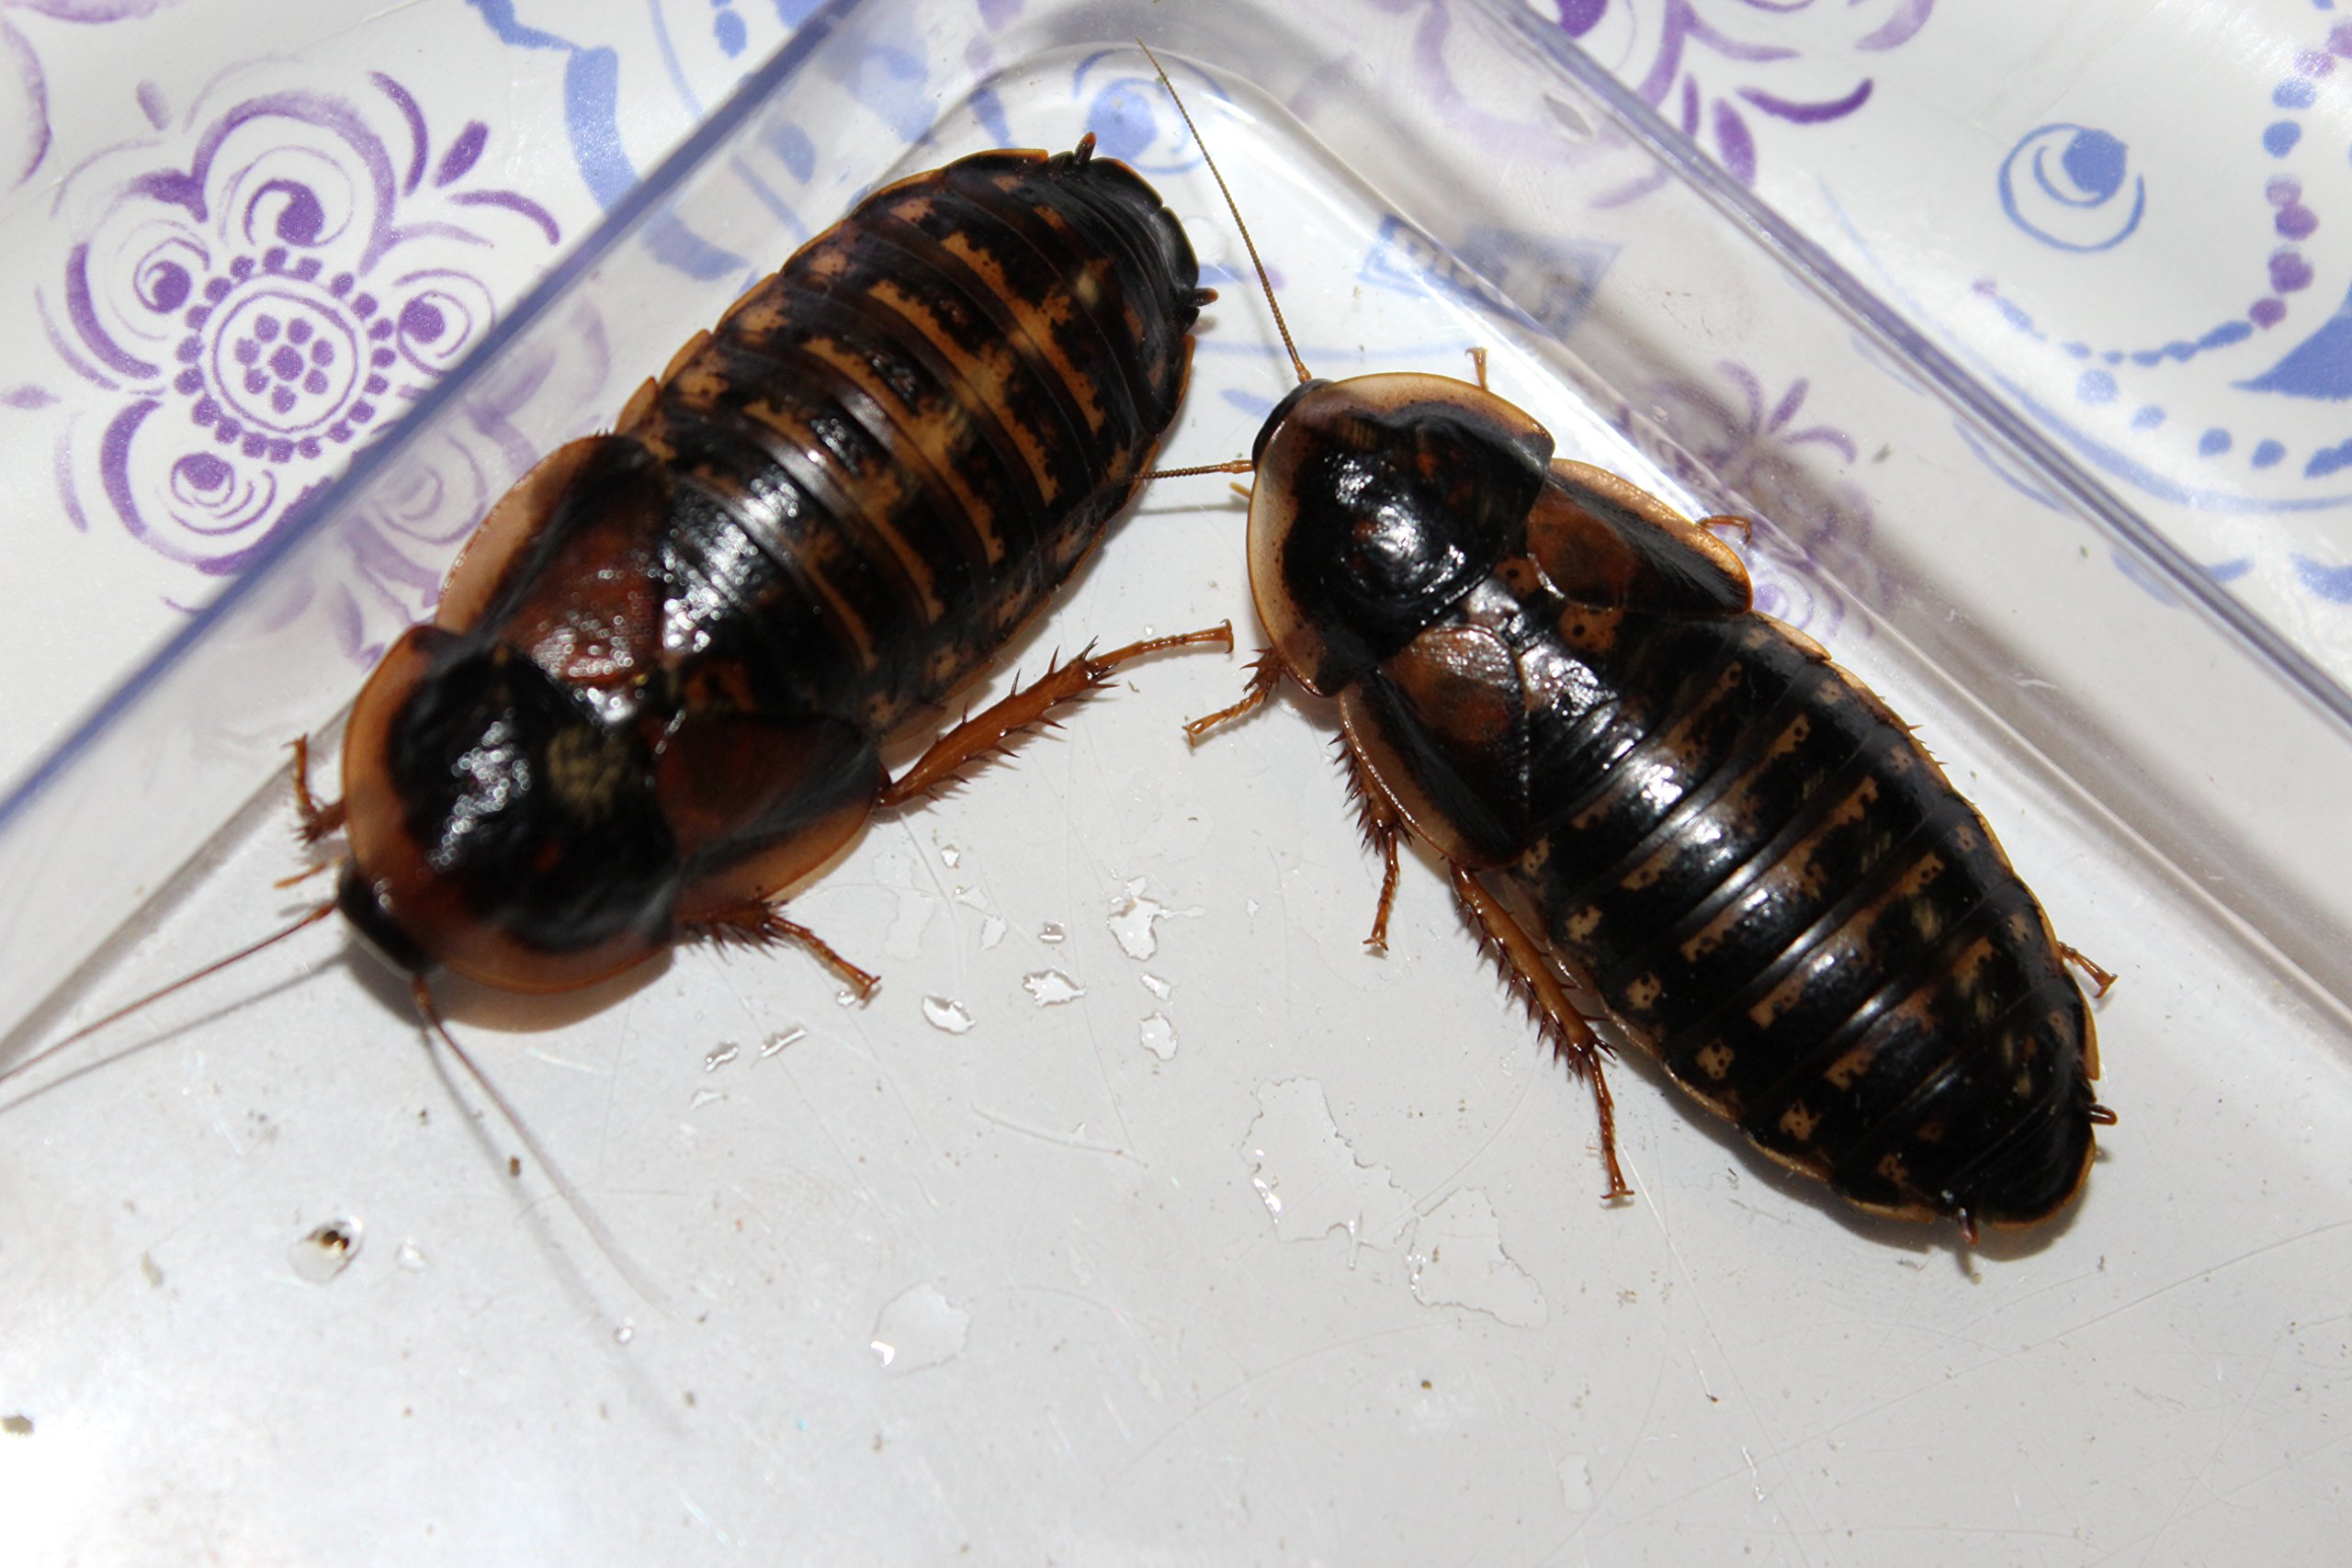 Adult Dubia Roaches 40 Females & 20 Males by Dubia roaches by Dubiacolony LLC